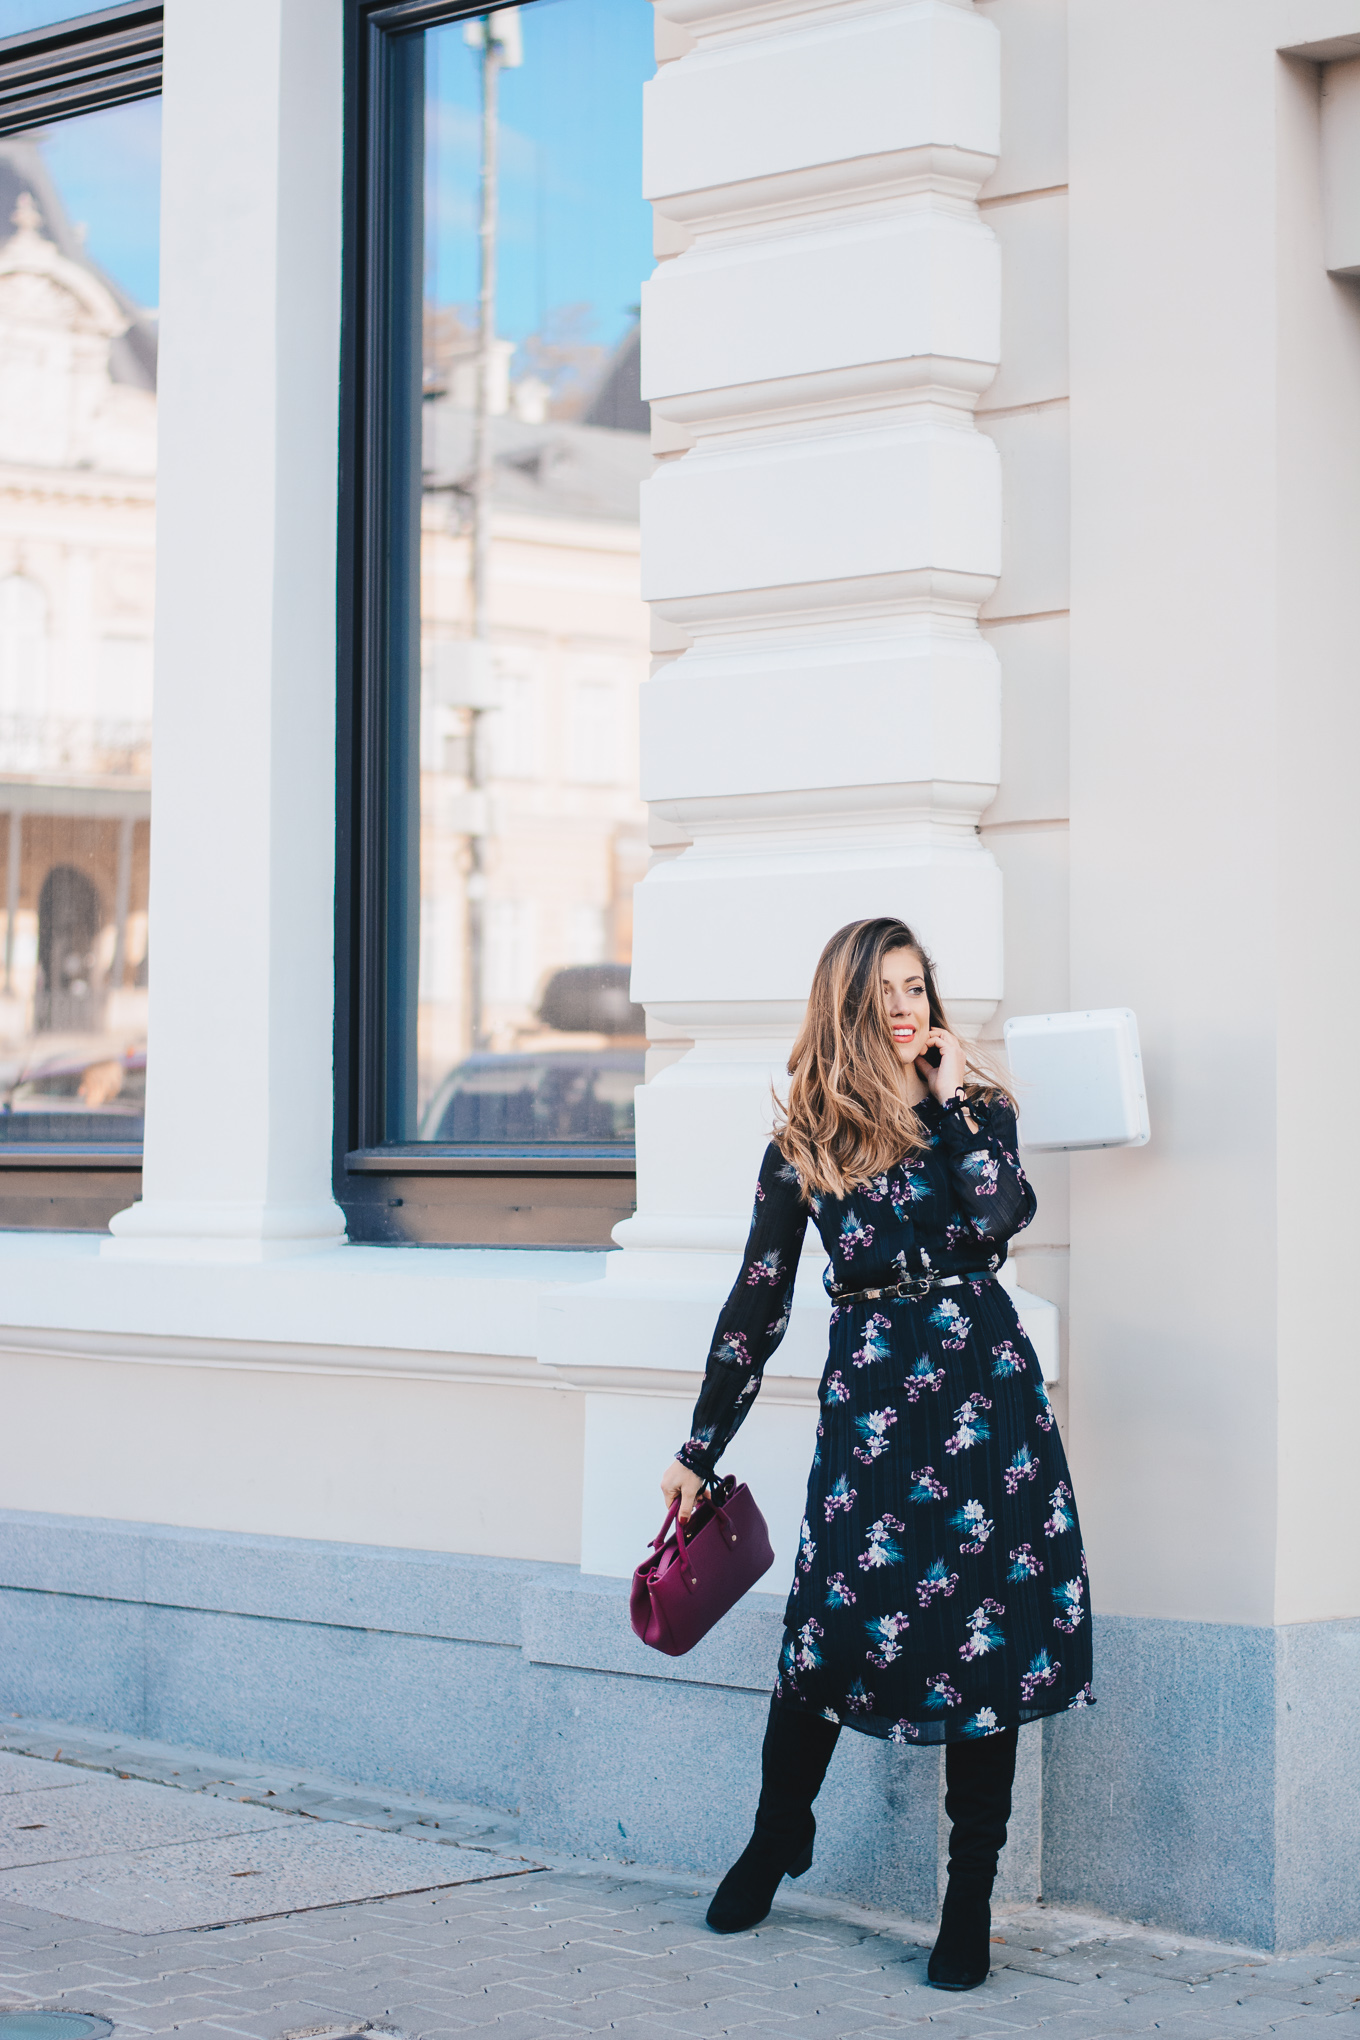 Blogger favorite dress